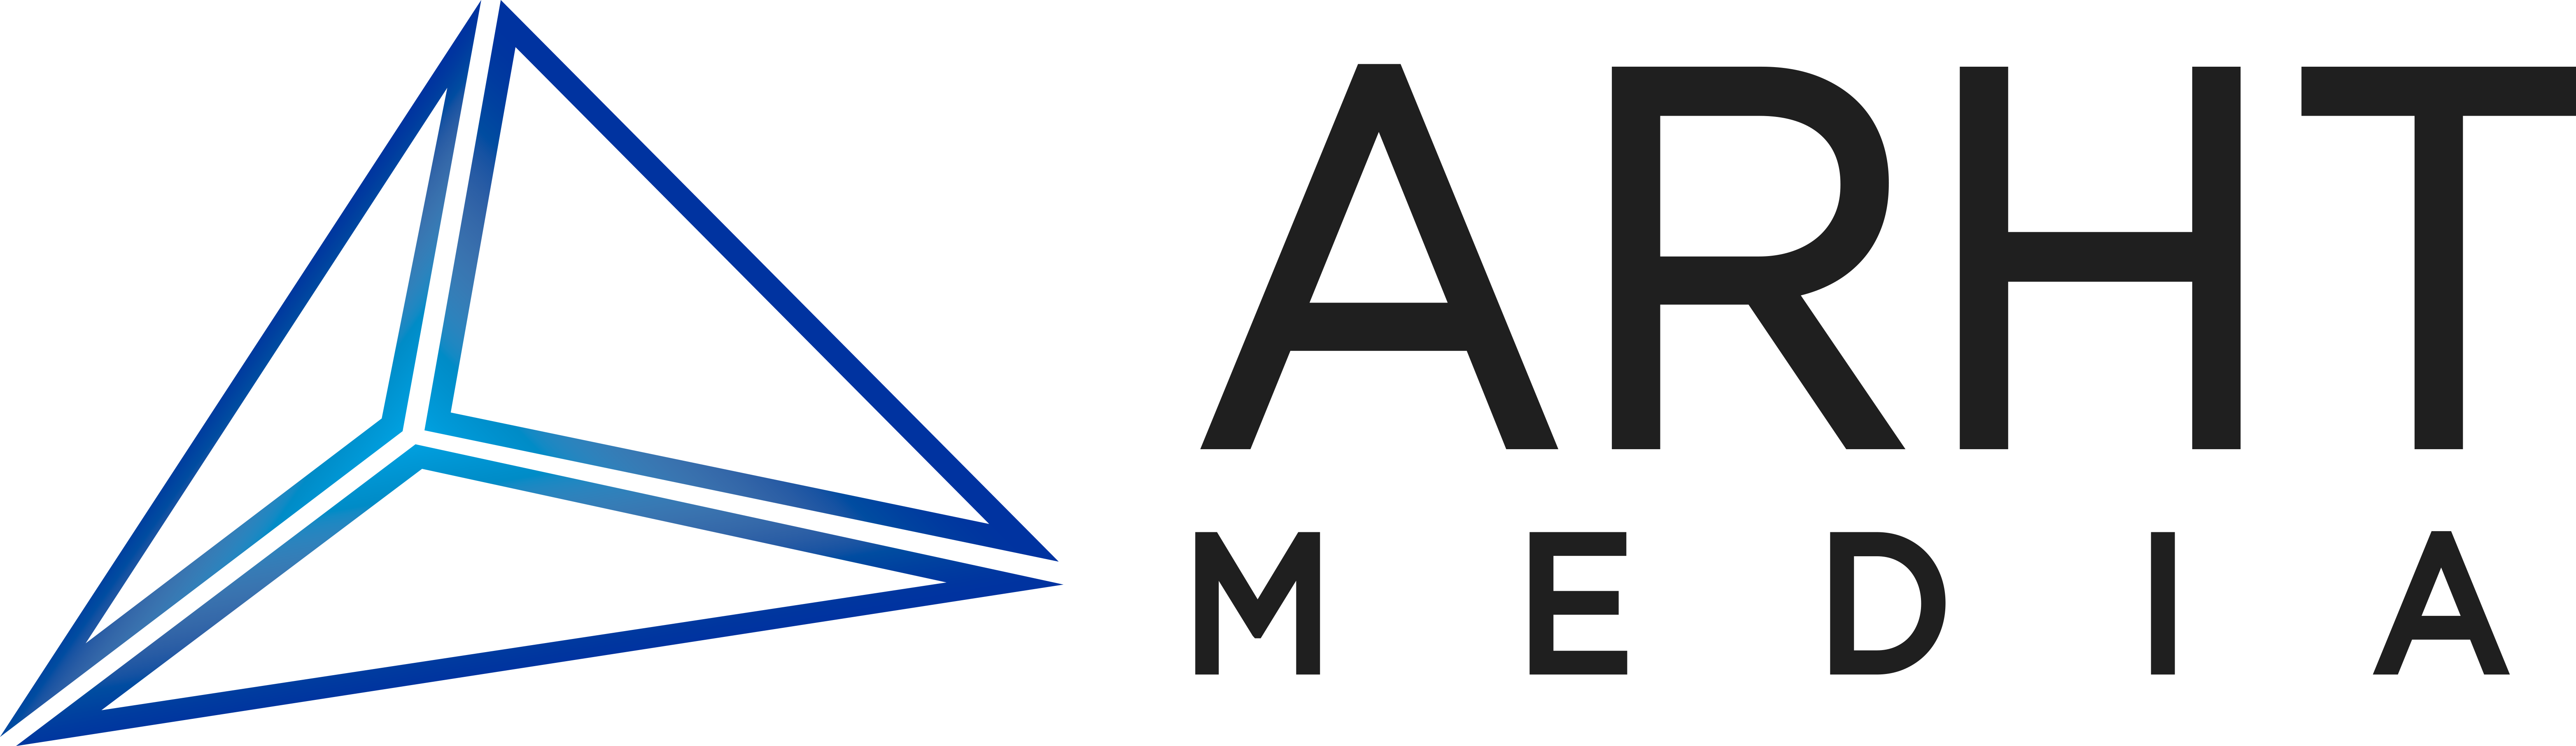 ARHT Media Announces Reseller And Integrator Agreement With Matrix Video Communications Corp - A Leading National AV Provider In Canada